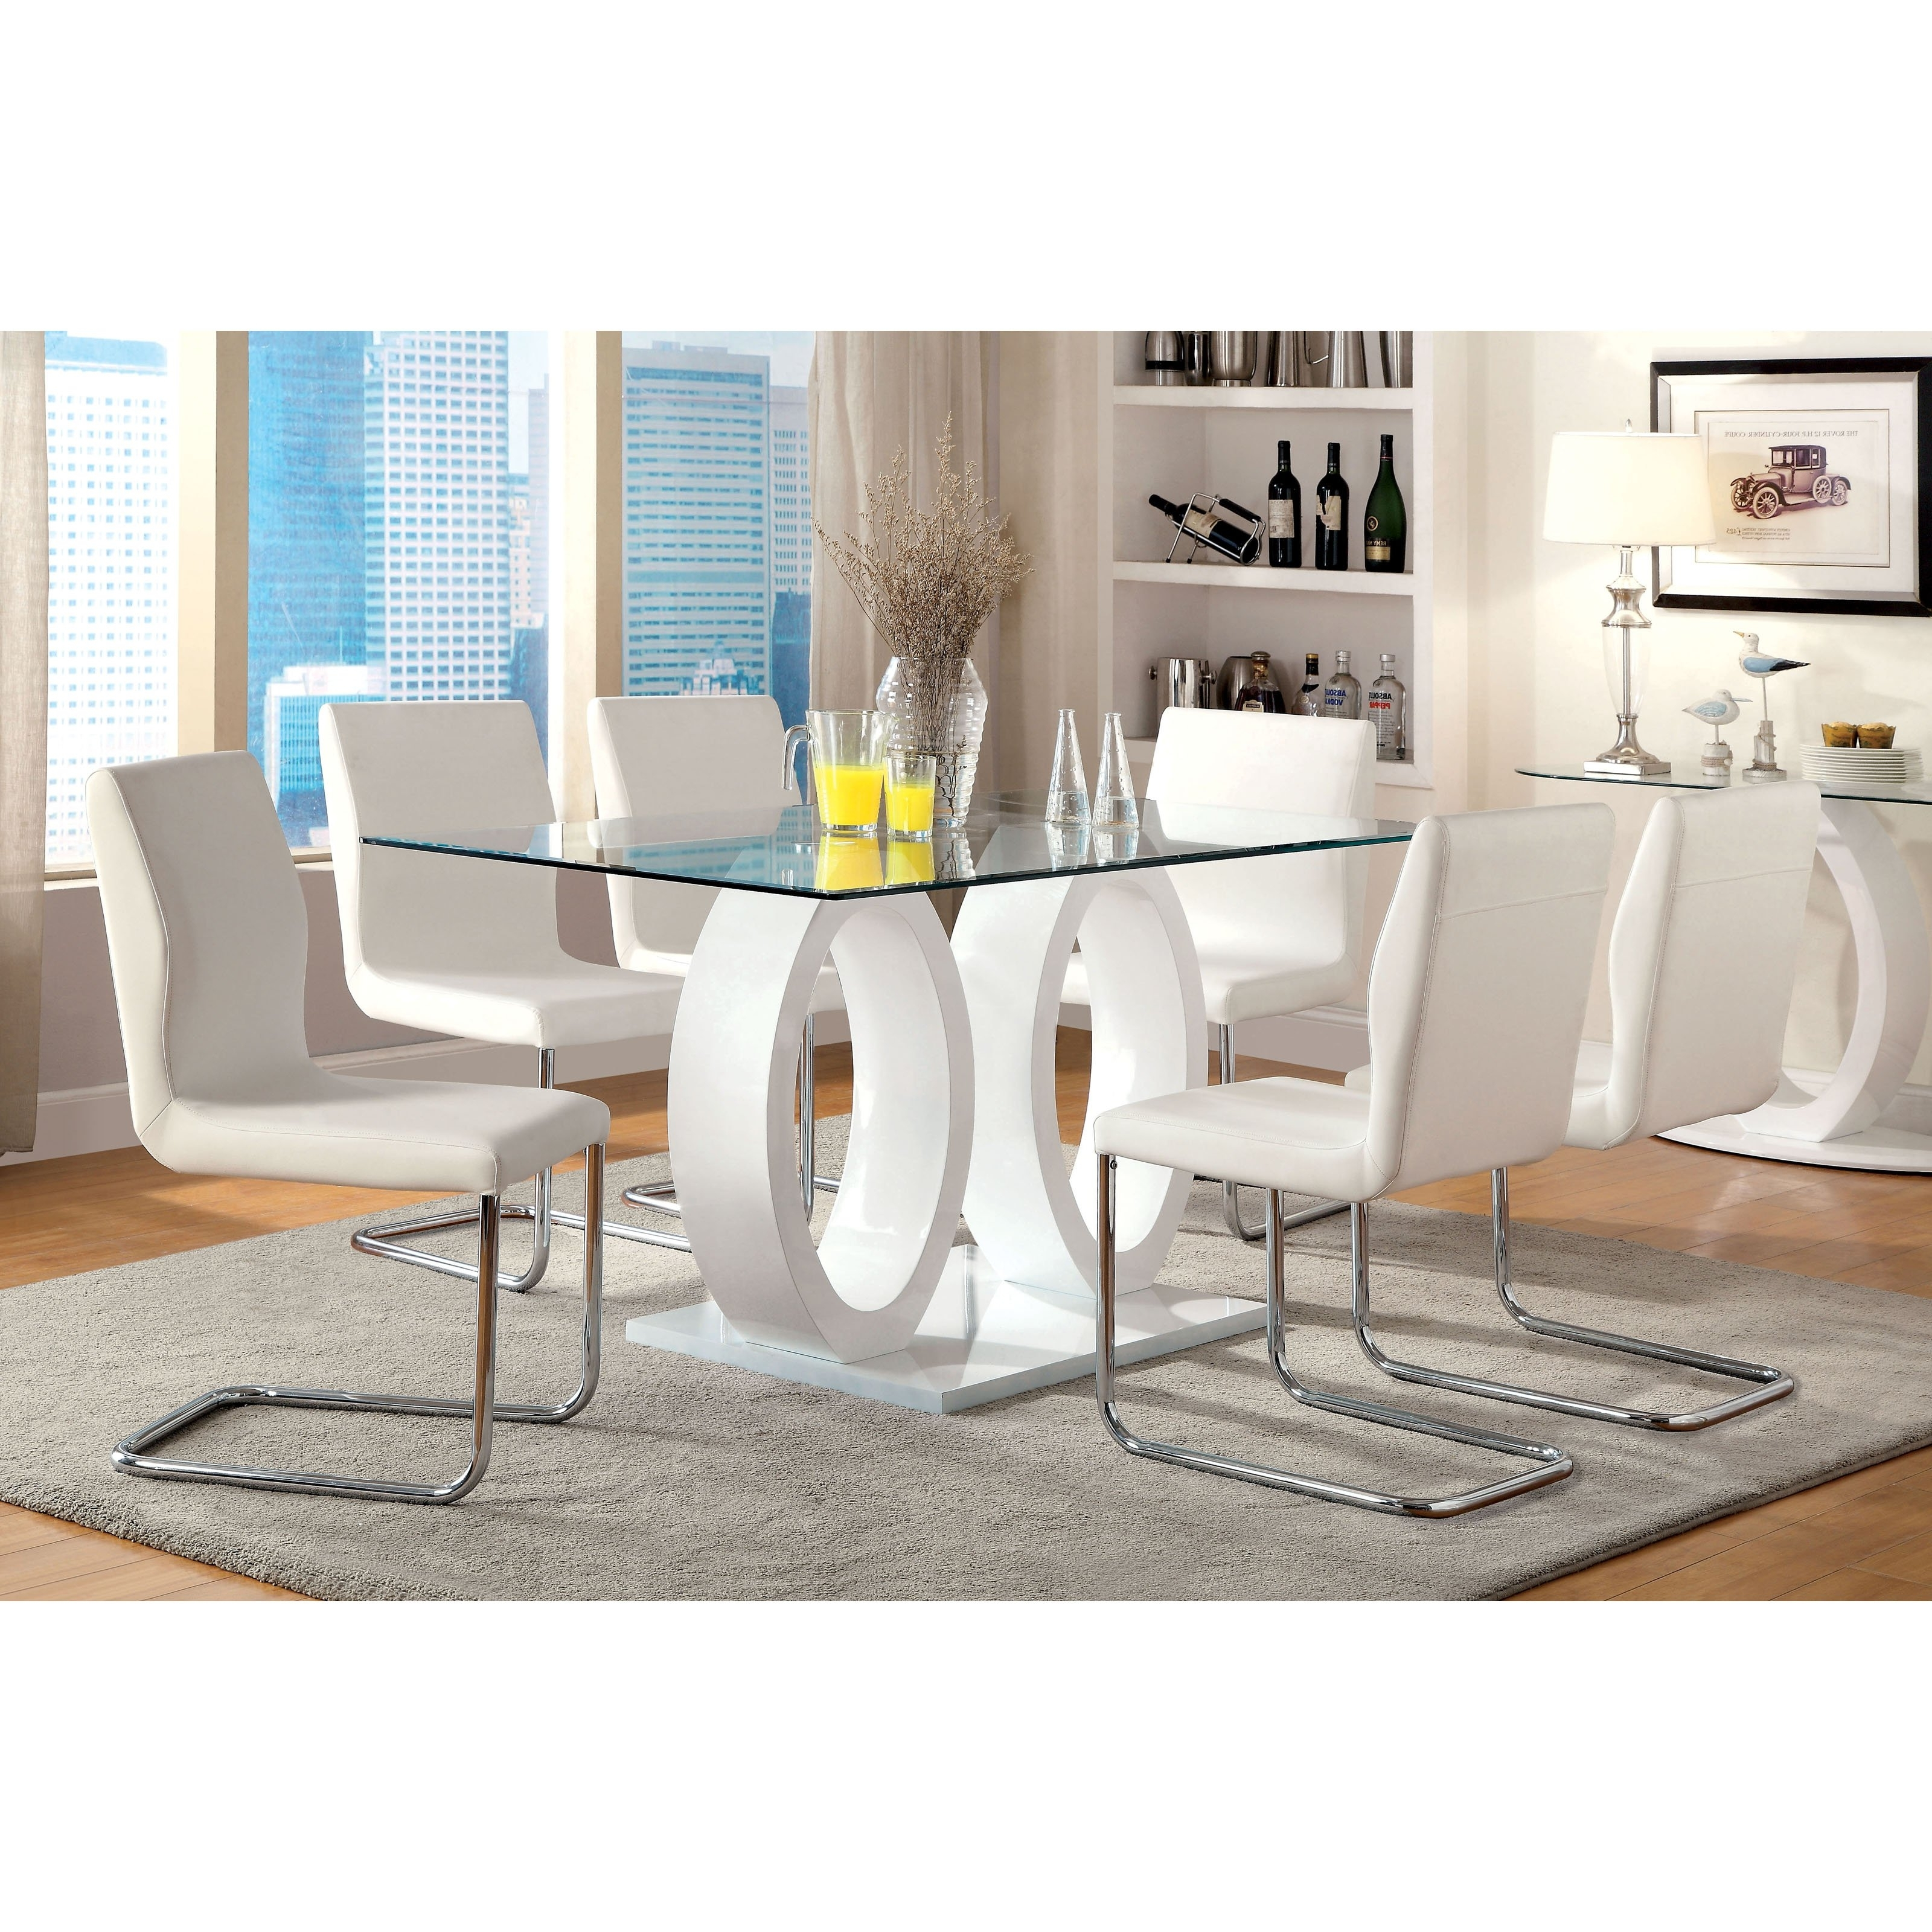 Furniture Of America Damore Contemporary 7 Piece High Gloss Dining Pertaining To Popular Contemporary Dining Tables Sets (View 15 of 25)